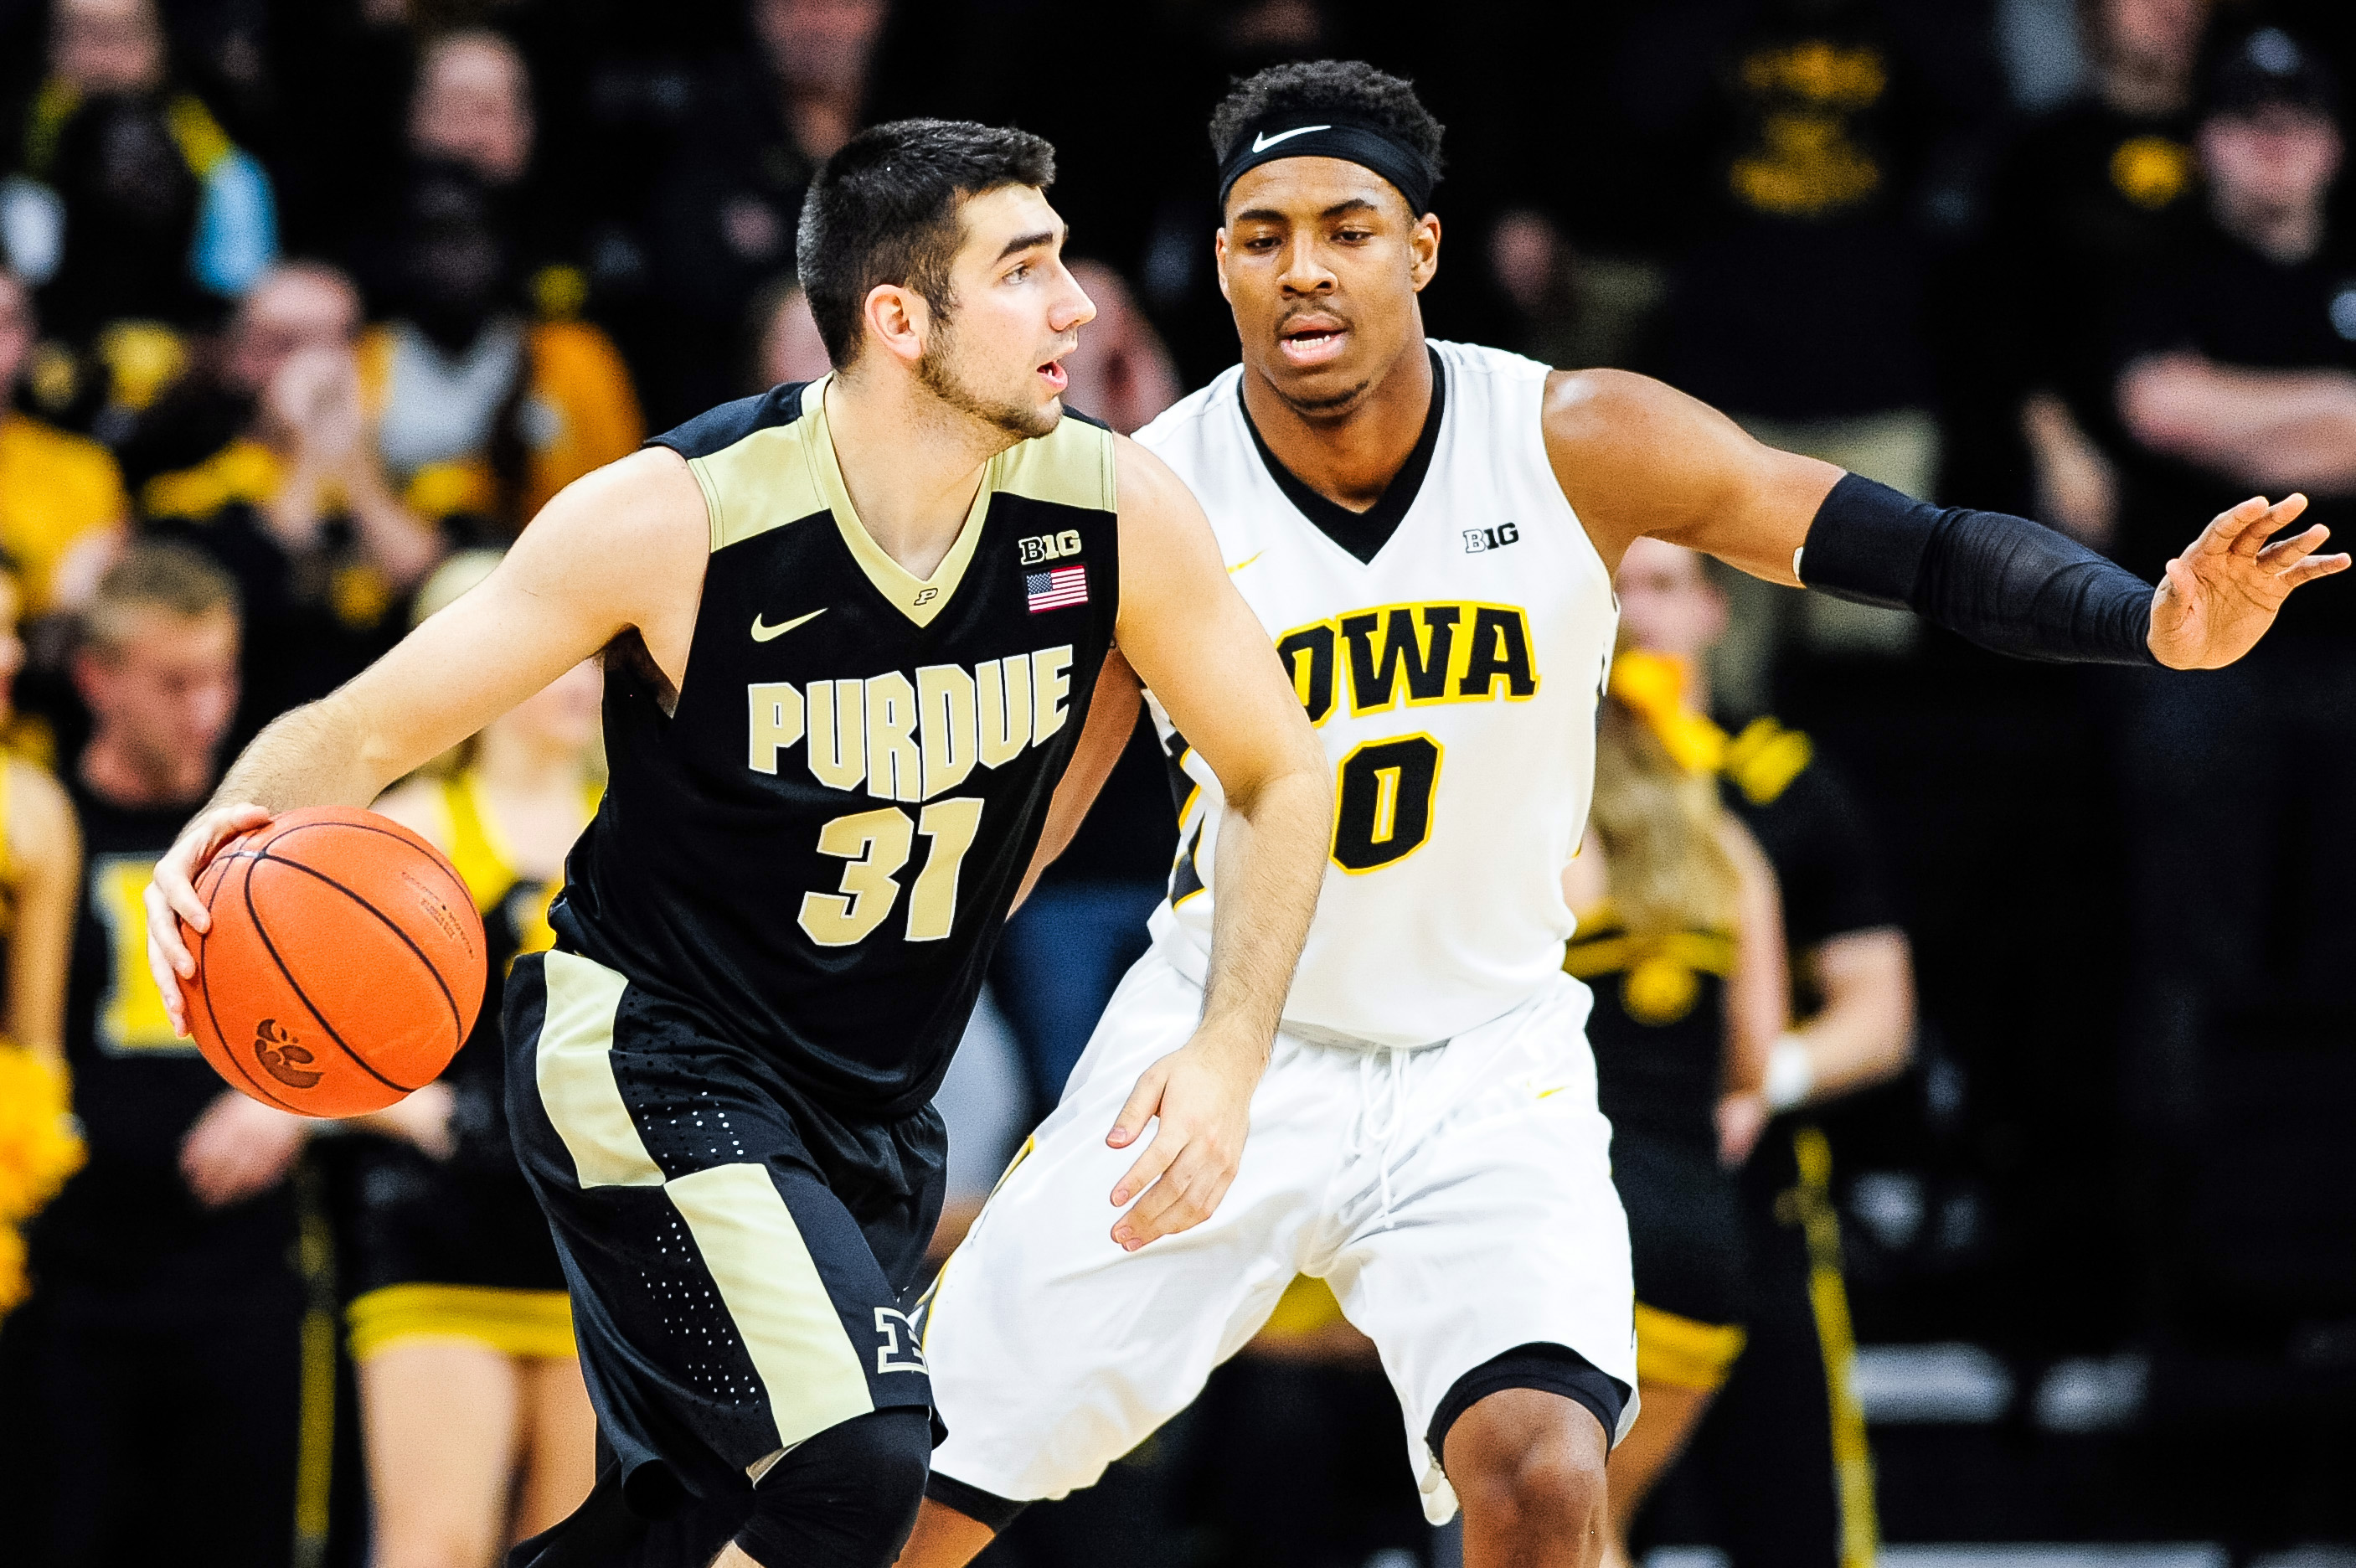 Jan 12, 2017; Iowa City, IA, USA; Purdue Boilermakers guard Dakota Mathias (31) is defended by Iowa Hawkeyes forward Ahmad Wagner (0) during the second half at Carver-Hawkeye Arena. Iowa won 83-78. Mandatory Credit: Jeffrey Becker-USA TODAY Sports